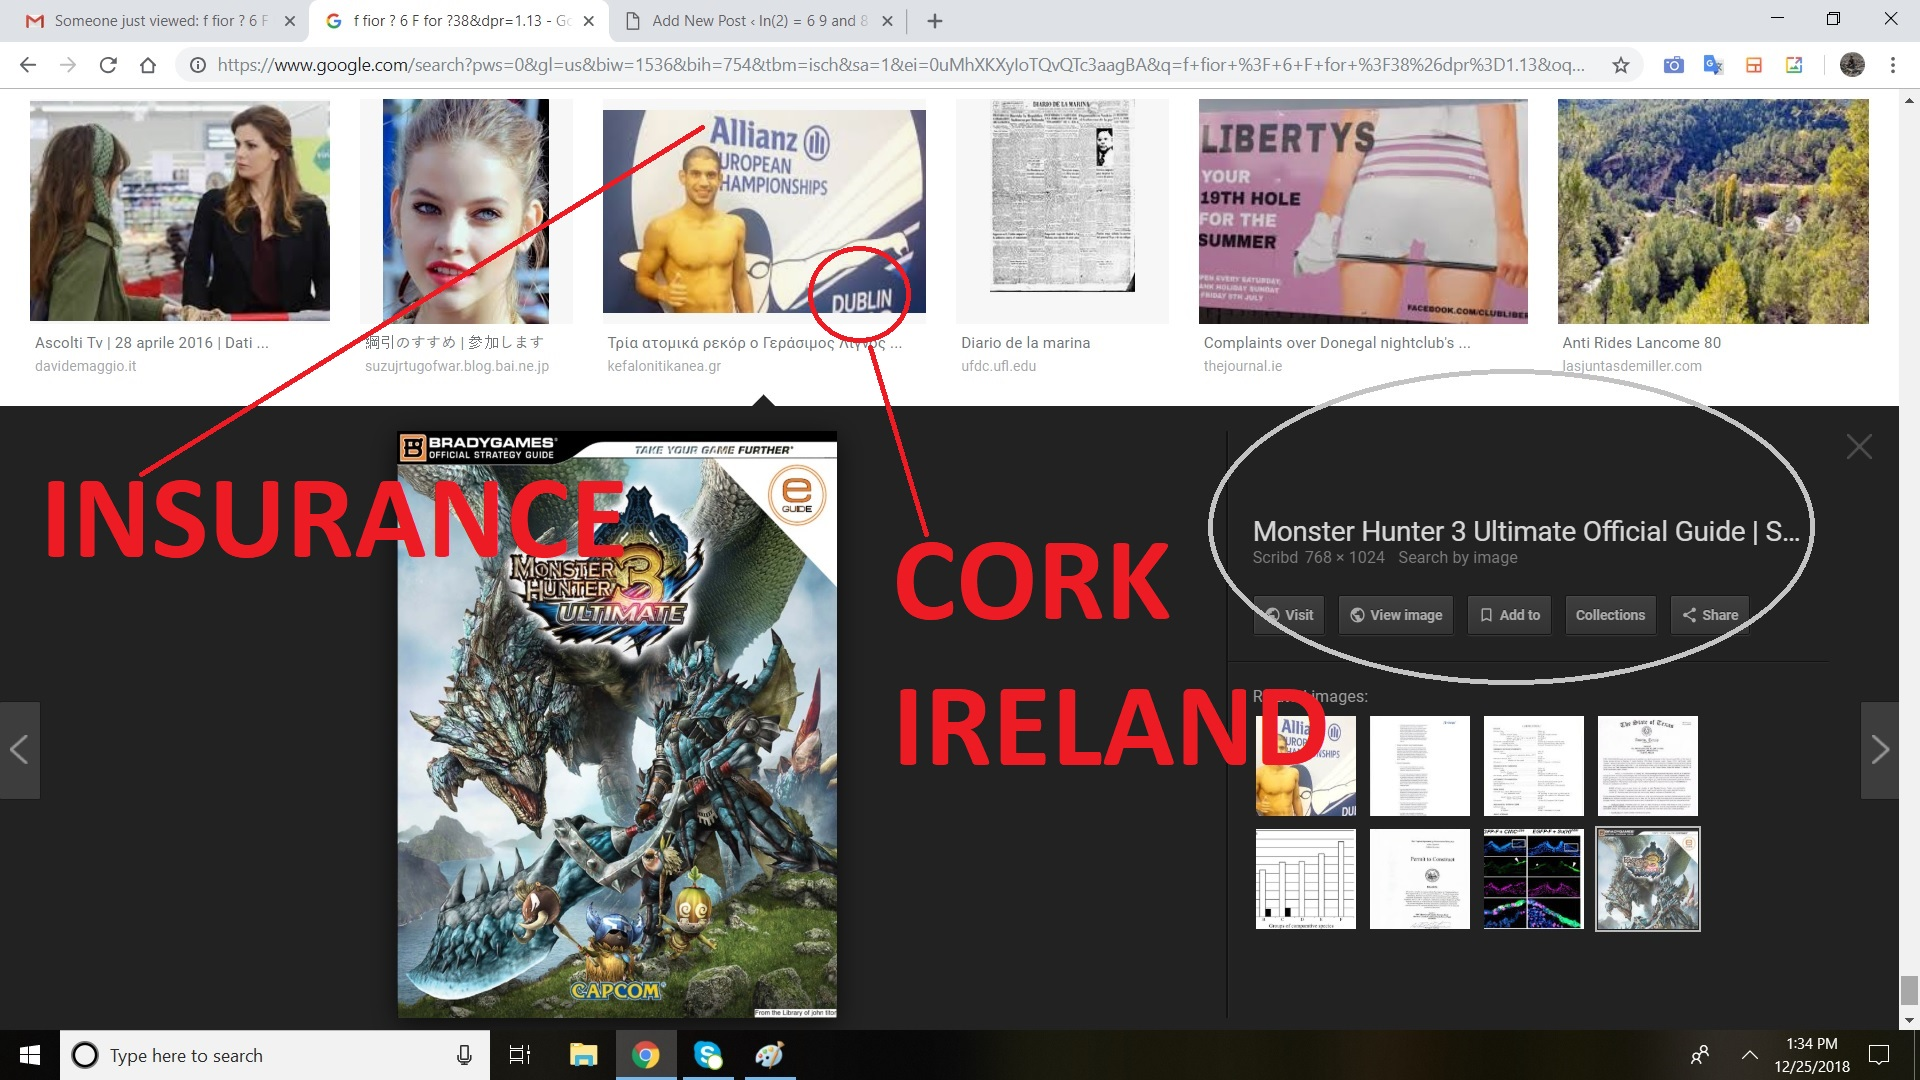 HERE IS INSURANCE AND COKR IN IRELAND